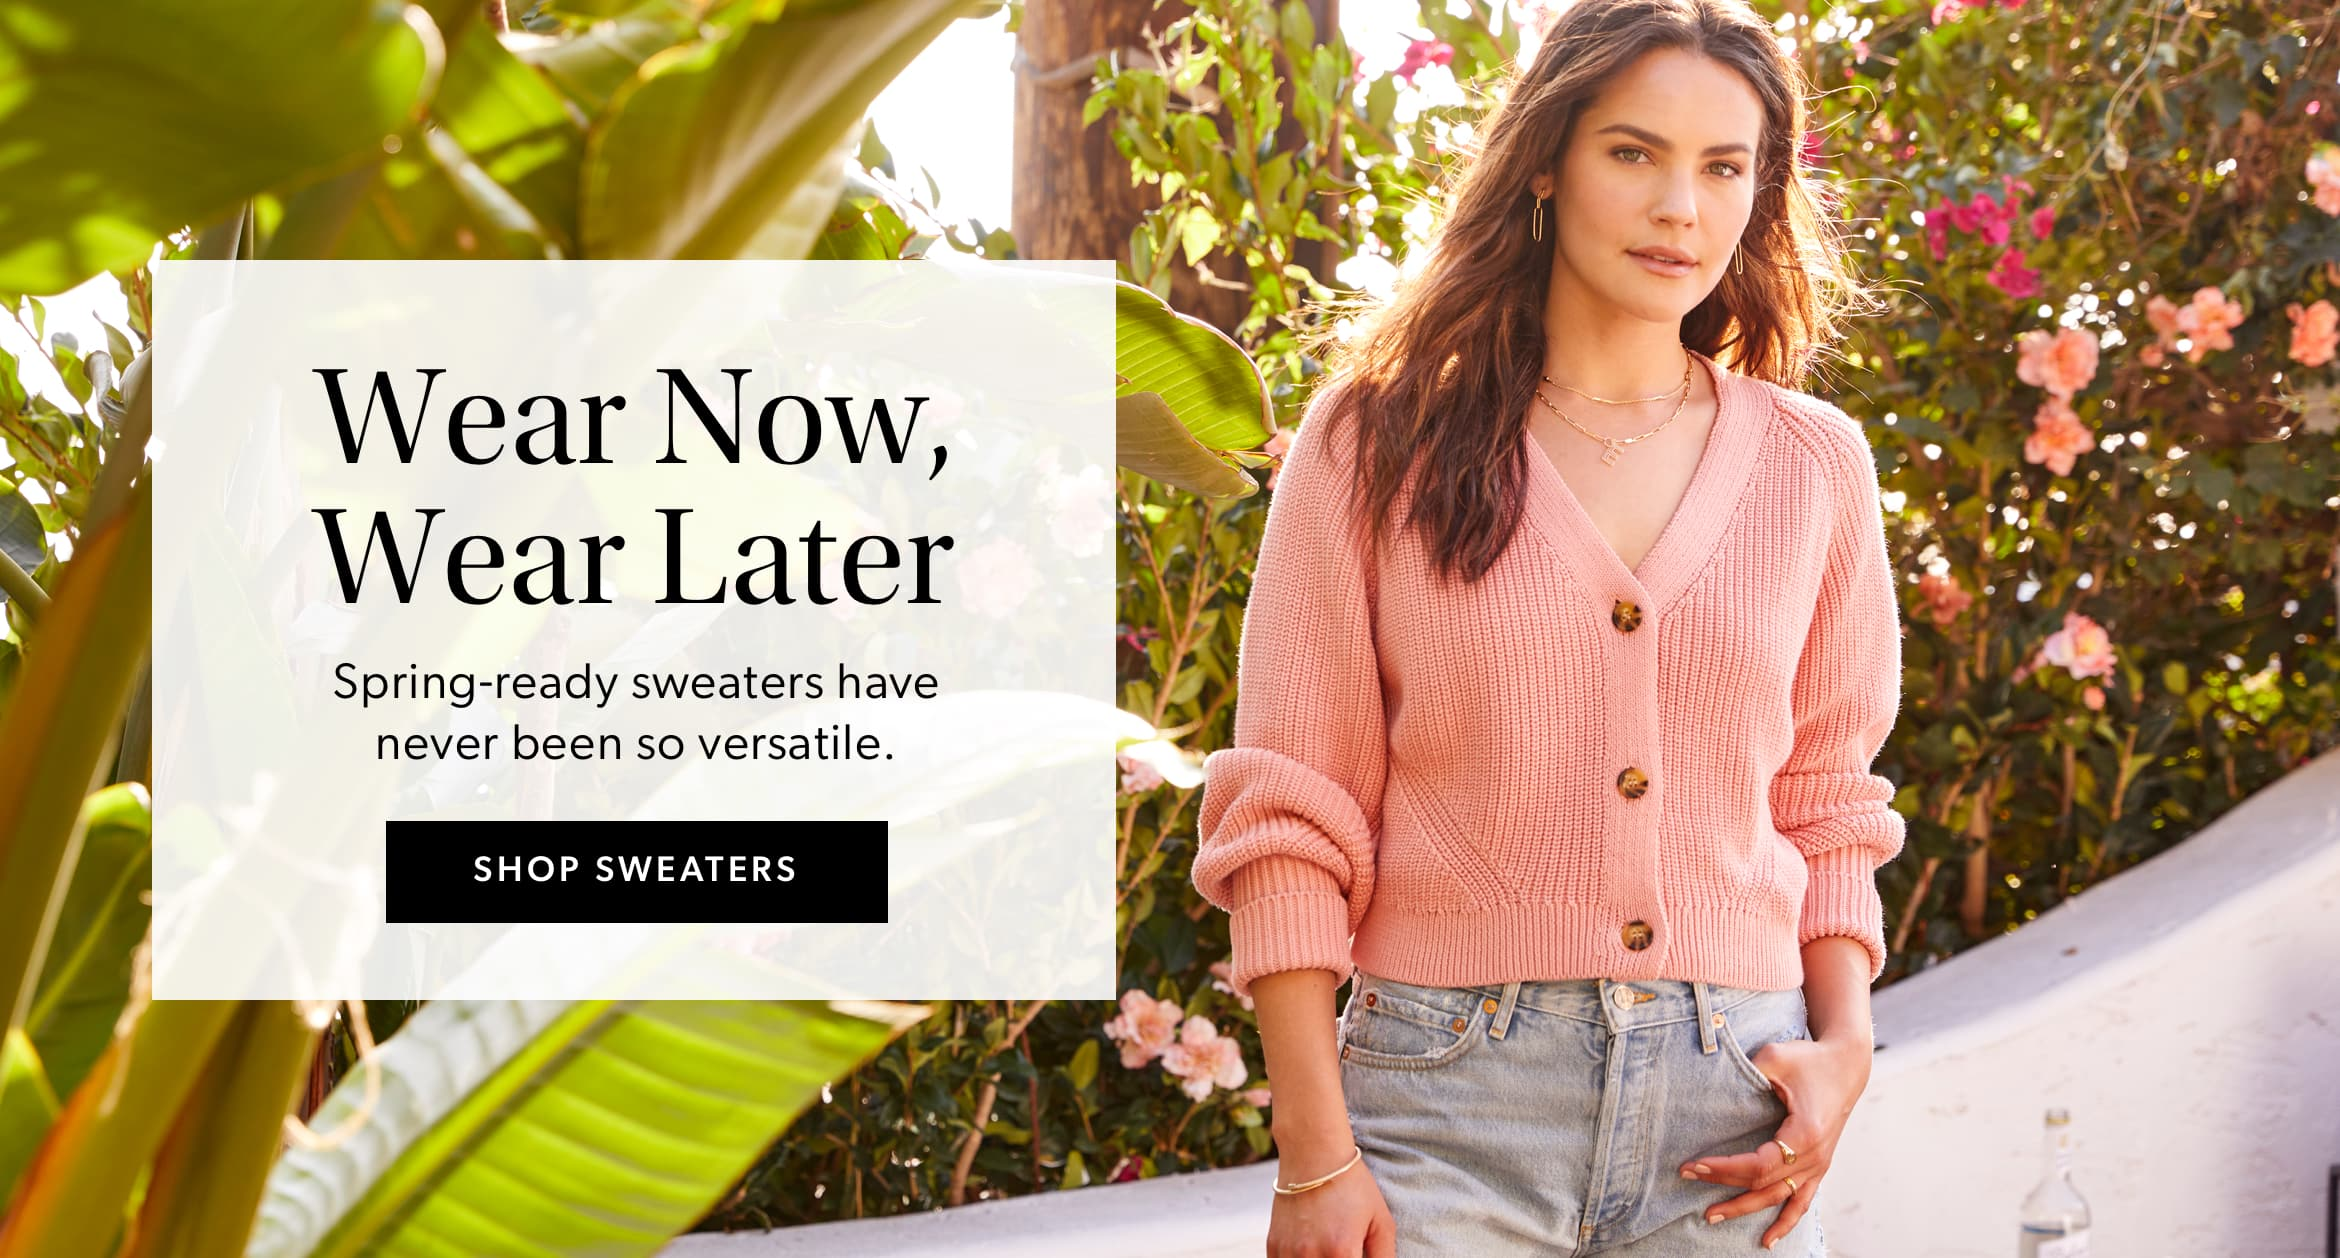 Wear Now, Wear Later. Spring-ready sweaters have never been so versatile. Shop Sweaters